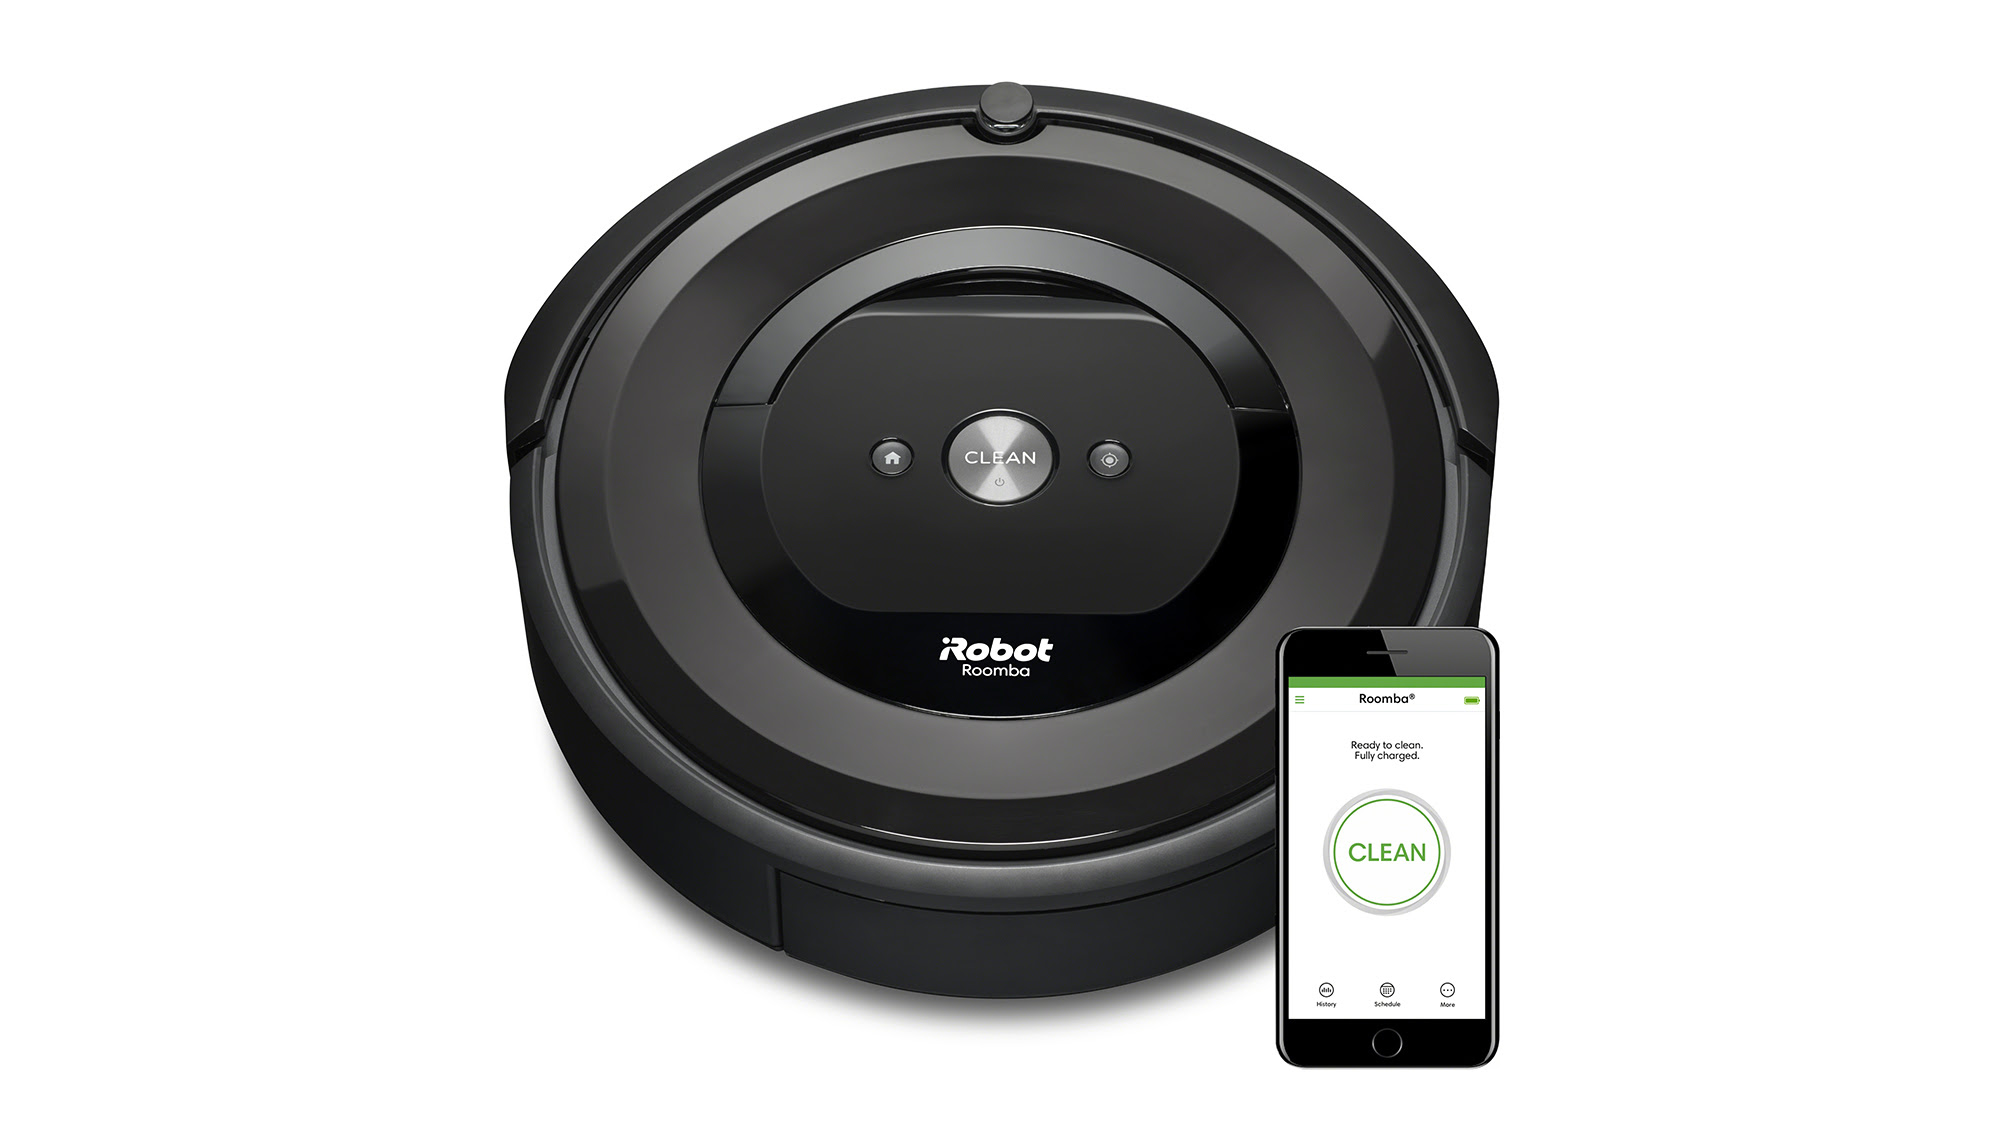 Super Roomba E5 deal: huge $100 off smart robot vacuum ahead of Black Friday